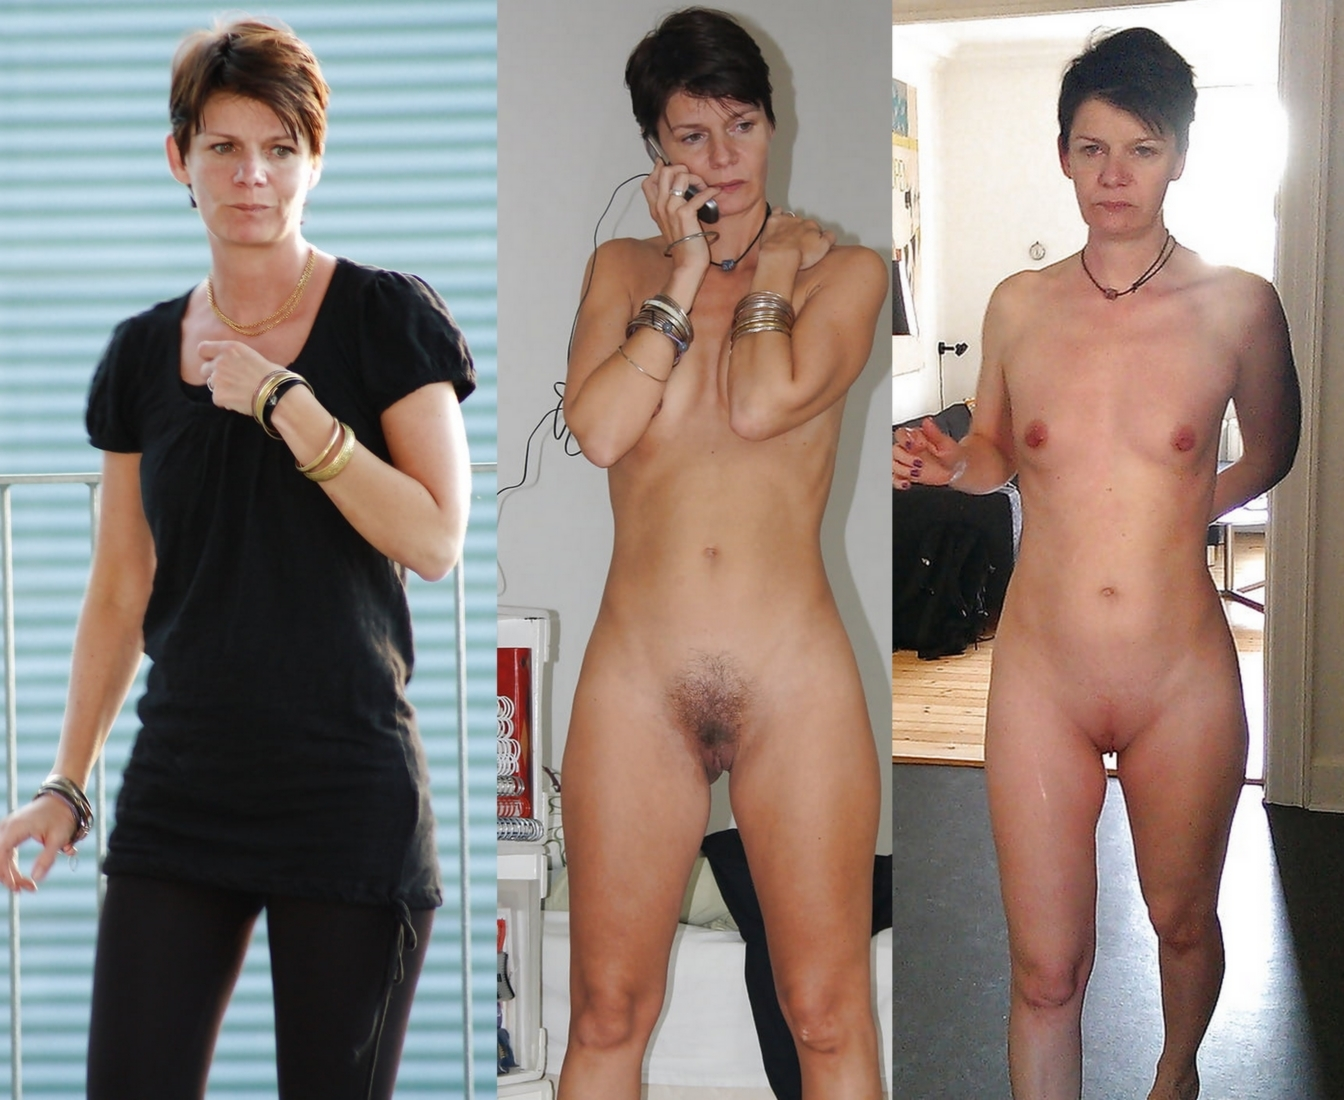 And nude before after marshillmusic.merchline.com :